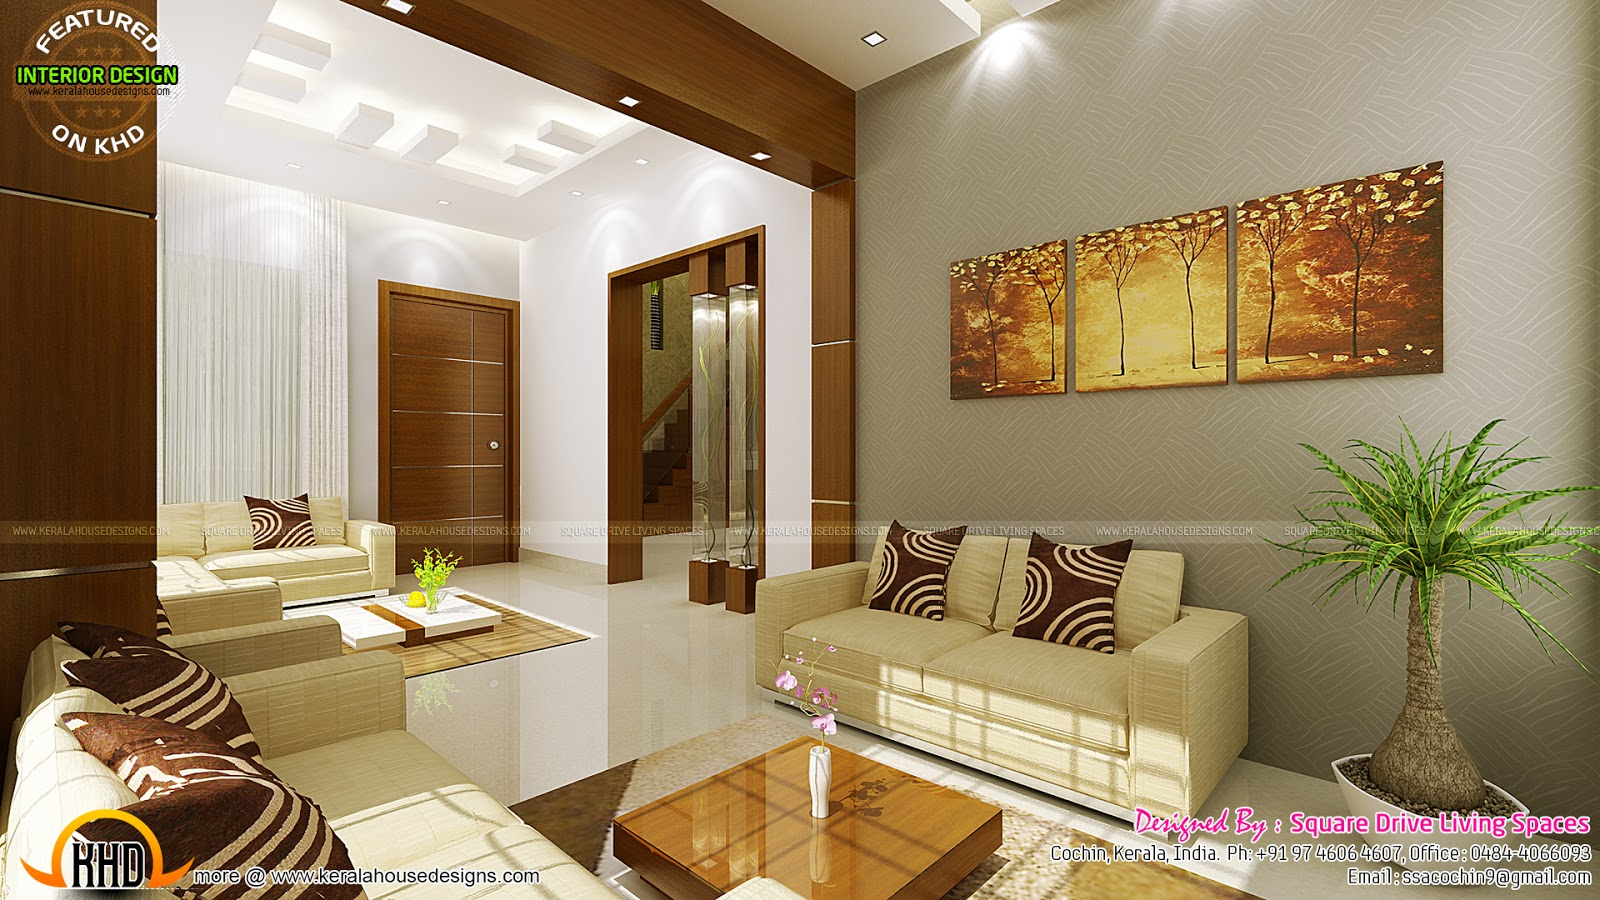 Contemporary kitchen dining and living room kerala home for Interior design contemporary style